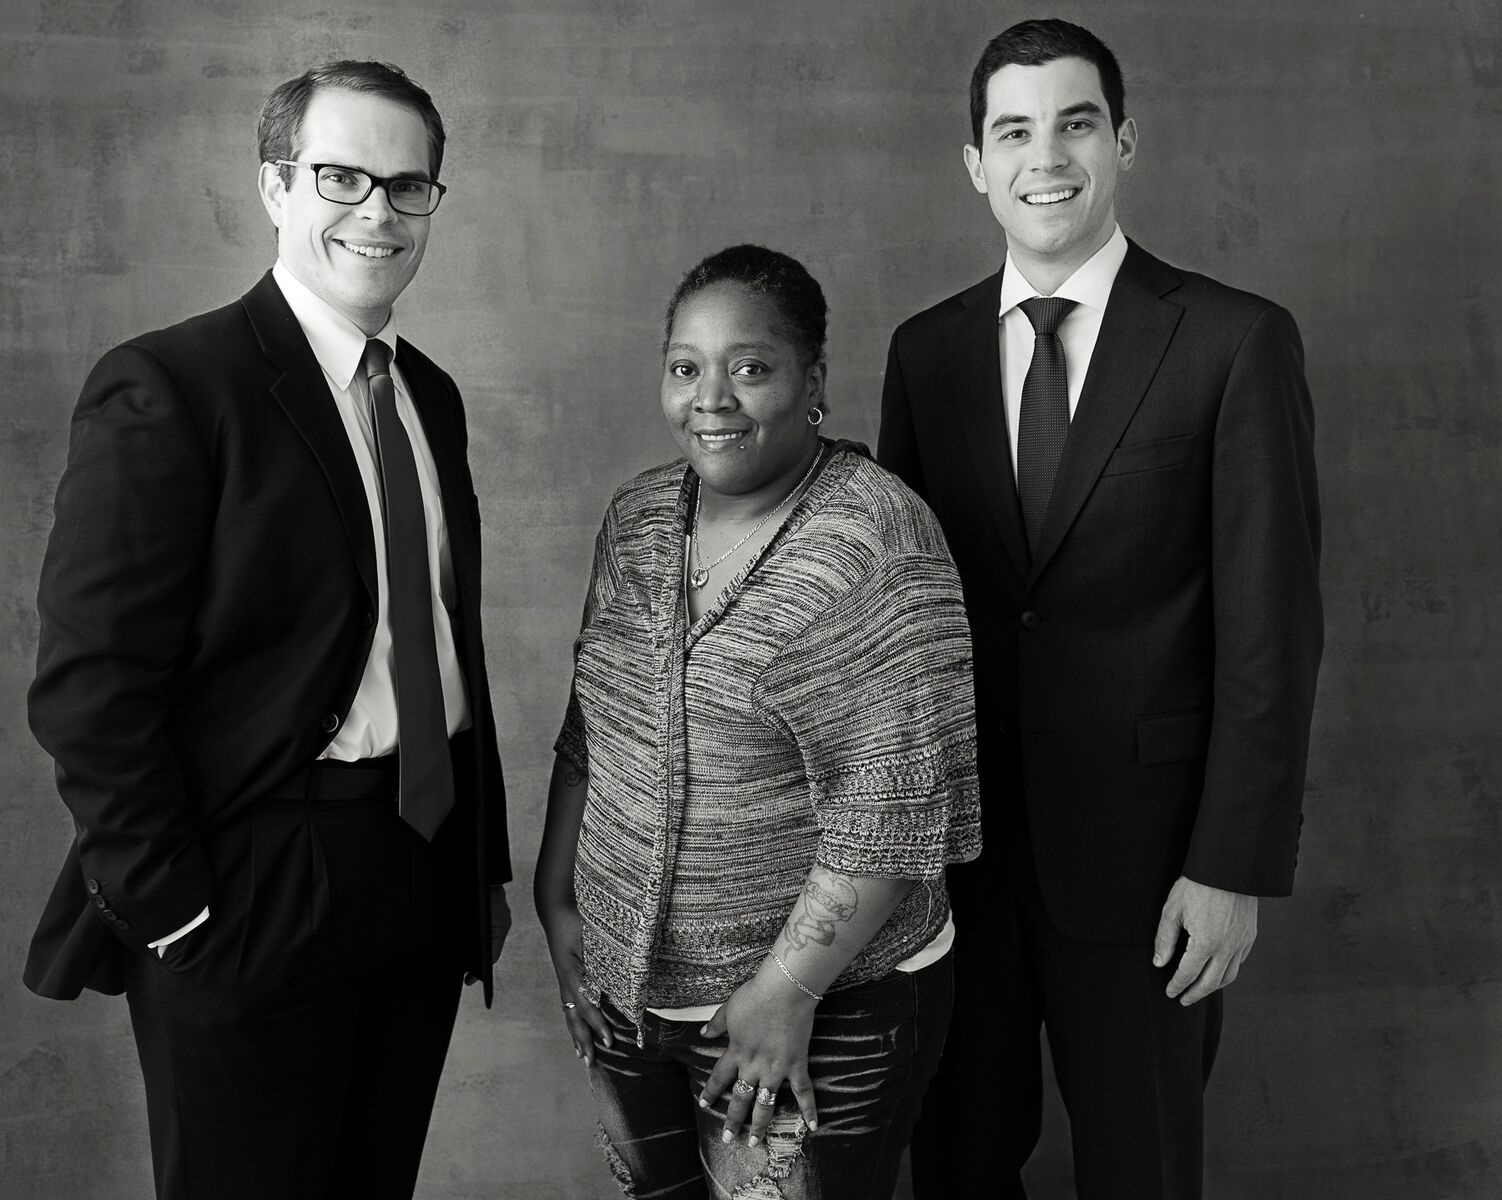 Crystal Taylor with Jonathan Porter (left) and Elliot Weingarten (right) of Simpson Thacher & Bartlett LLP